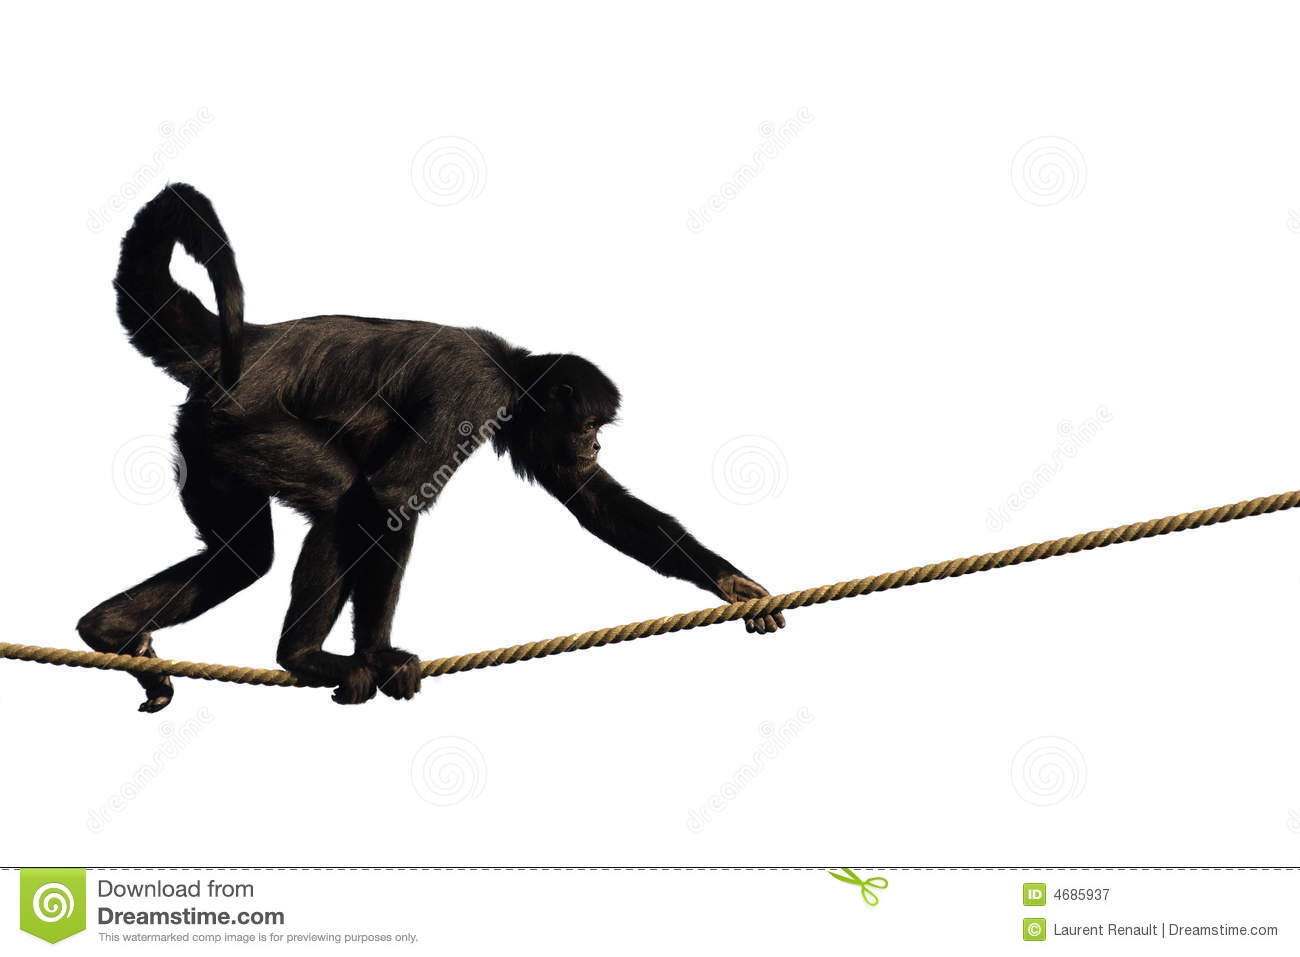 Climbing Monkey Royalty Free Stock Photography - Image: 4685937